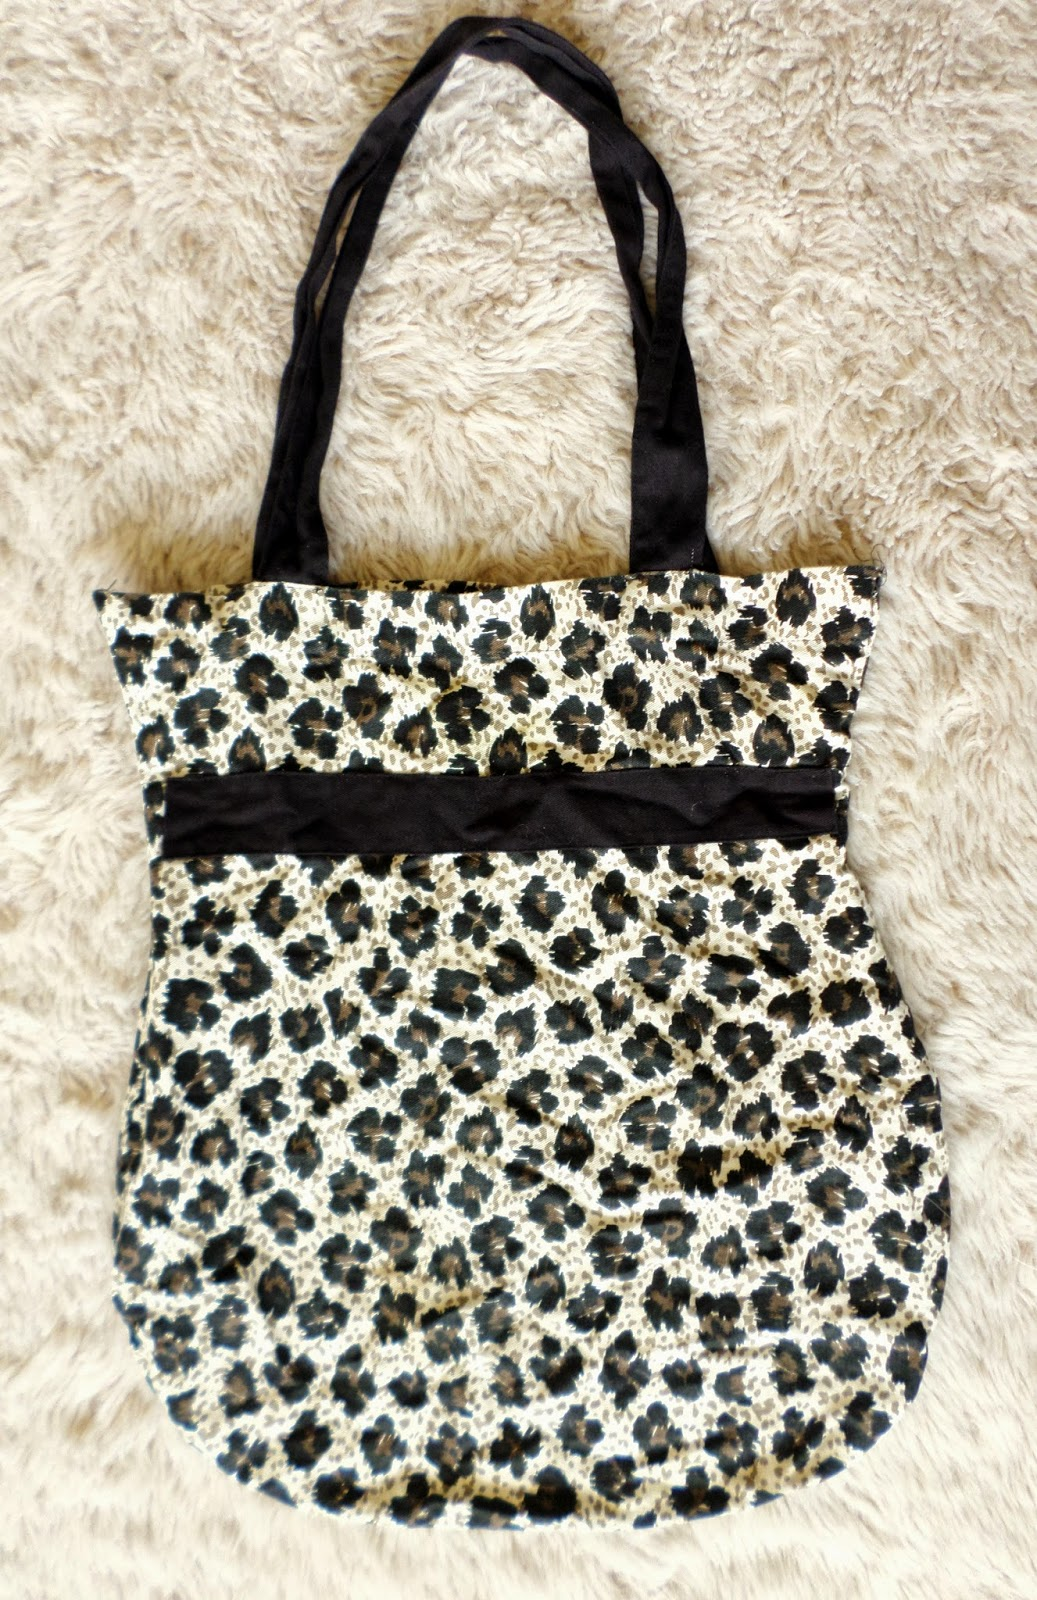 Leopard Print Canvas Bag Car Boot Booty Thrift Haul #3